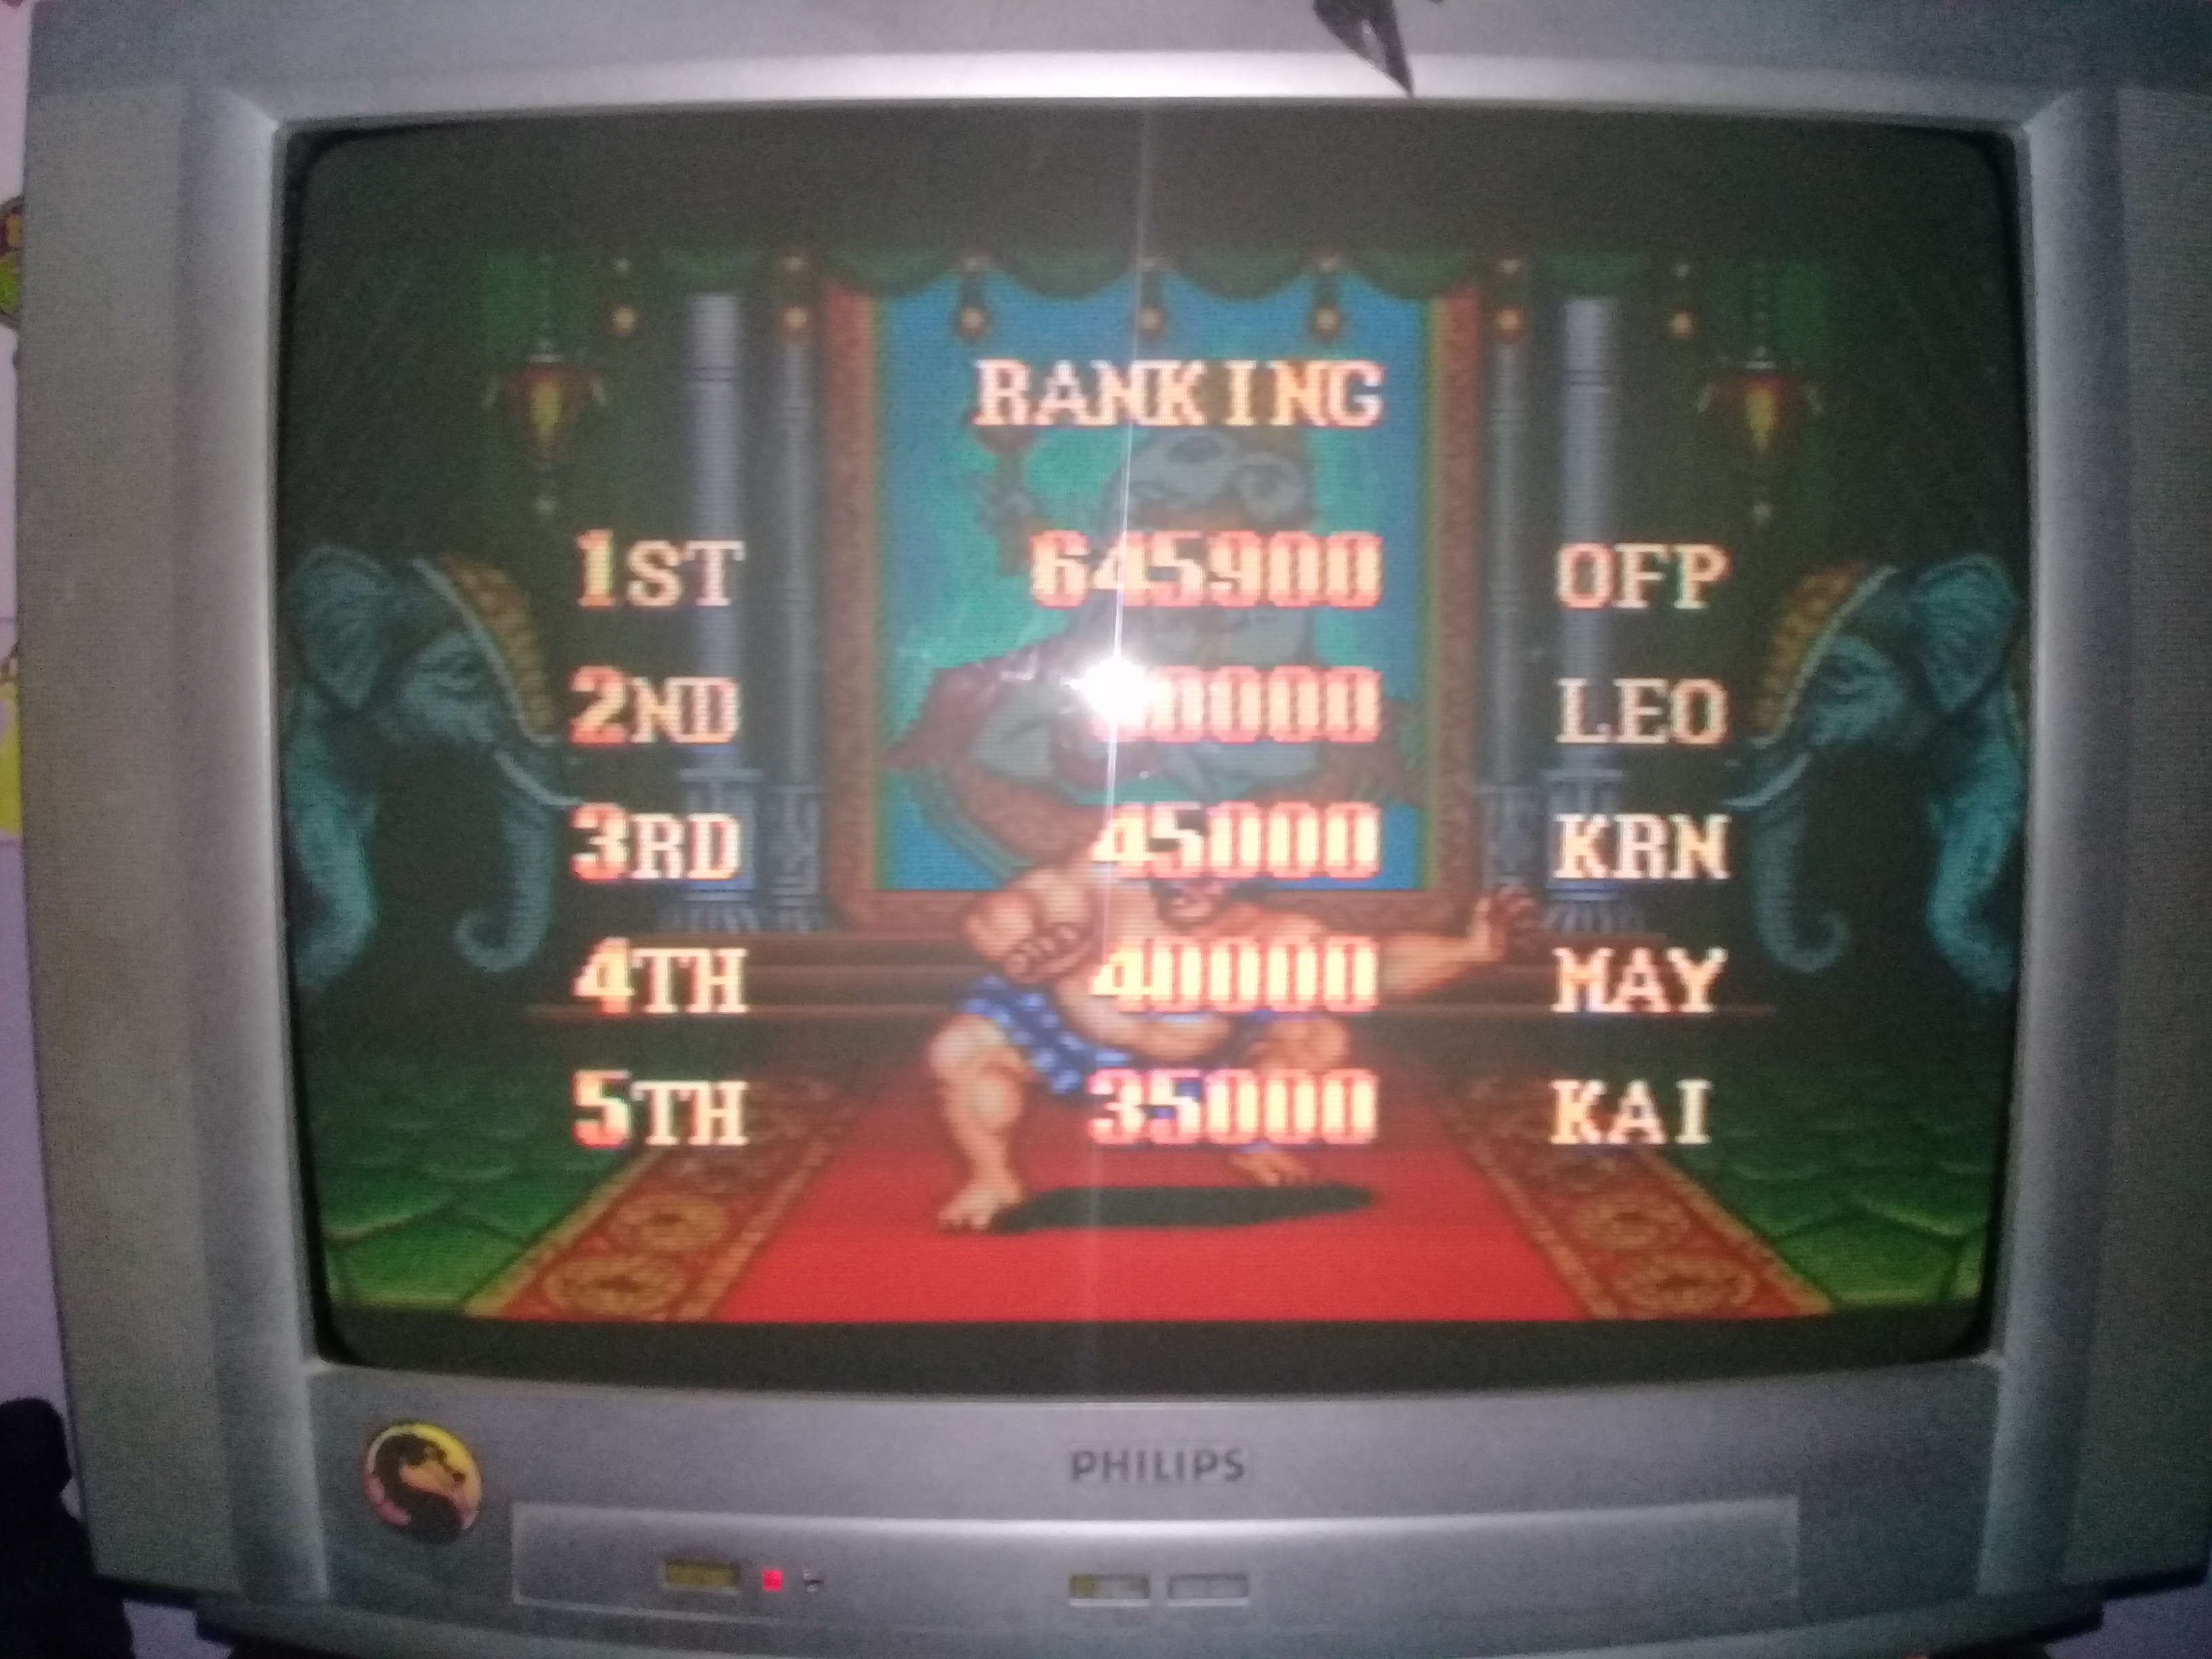 omargeddon: Super Street Fighter II: The New Challengers [Super Battle: Difficulty 7] (SNES/Super Famicom) 645,900 points on 2020-04-04 23:23:11